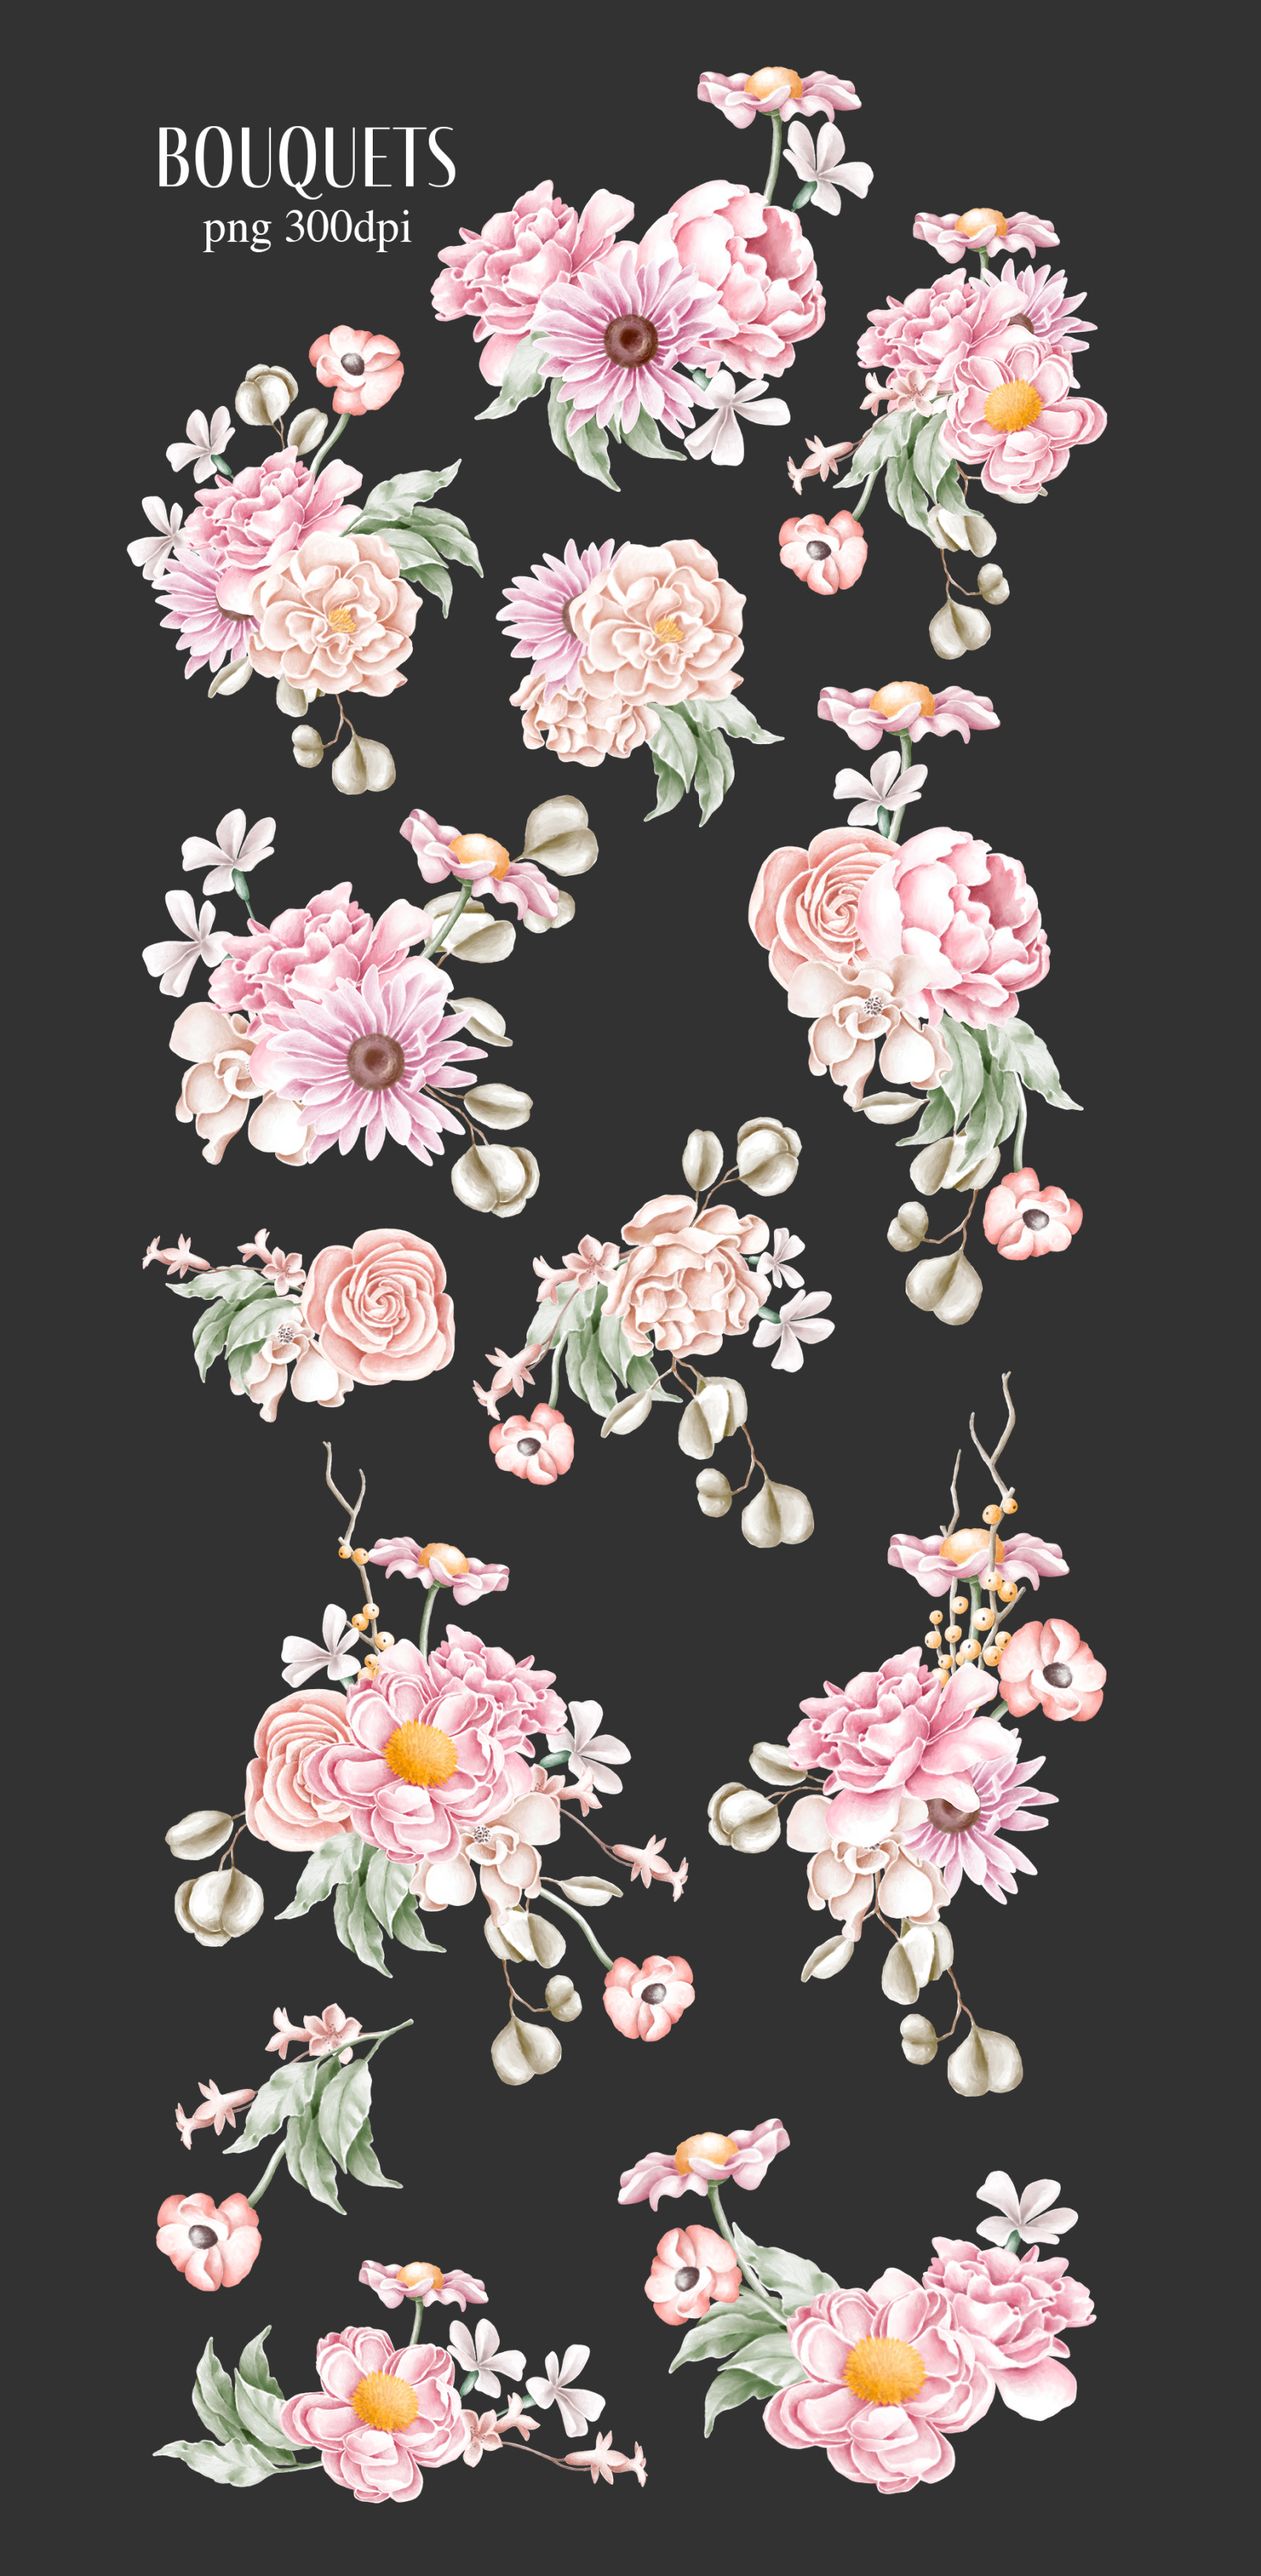 Floral bouquets hand drawn clipart